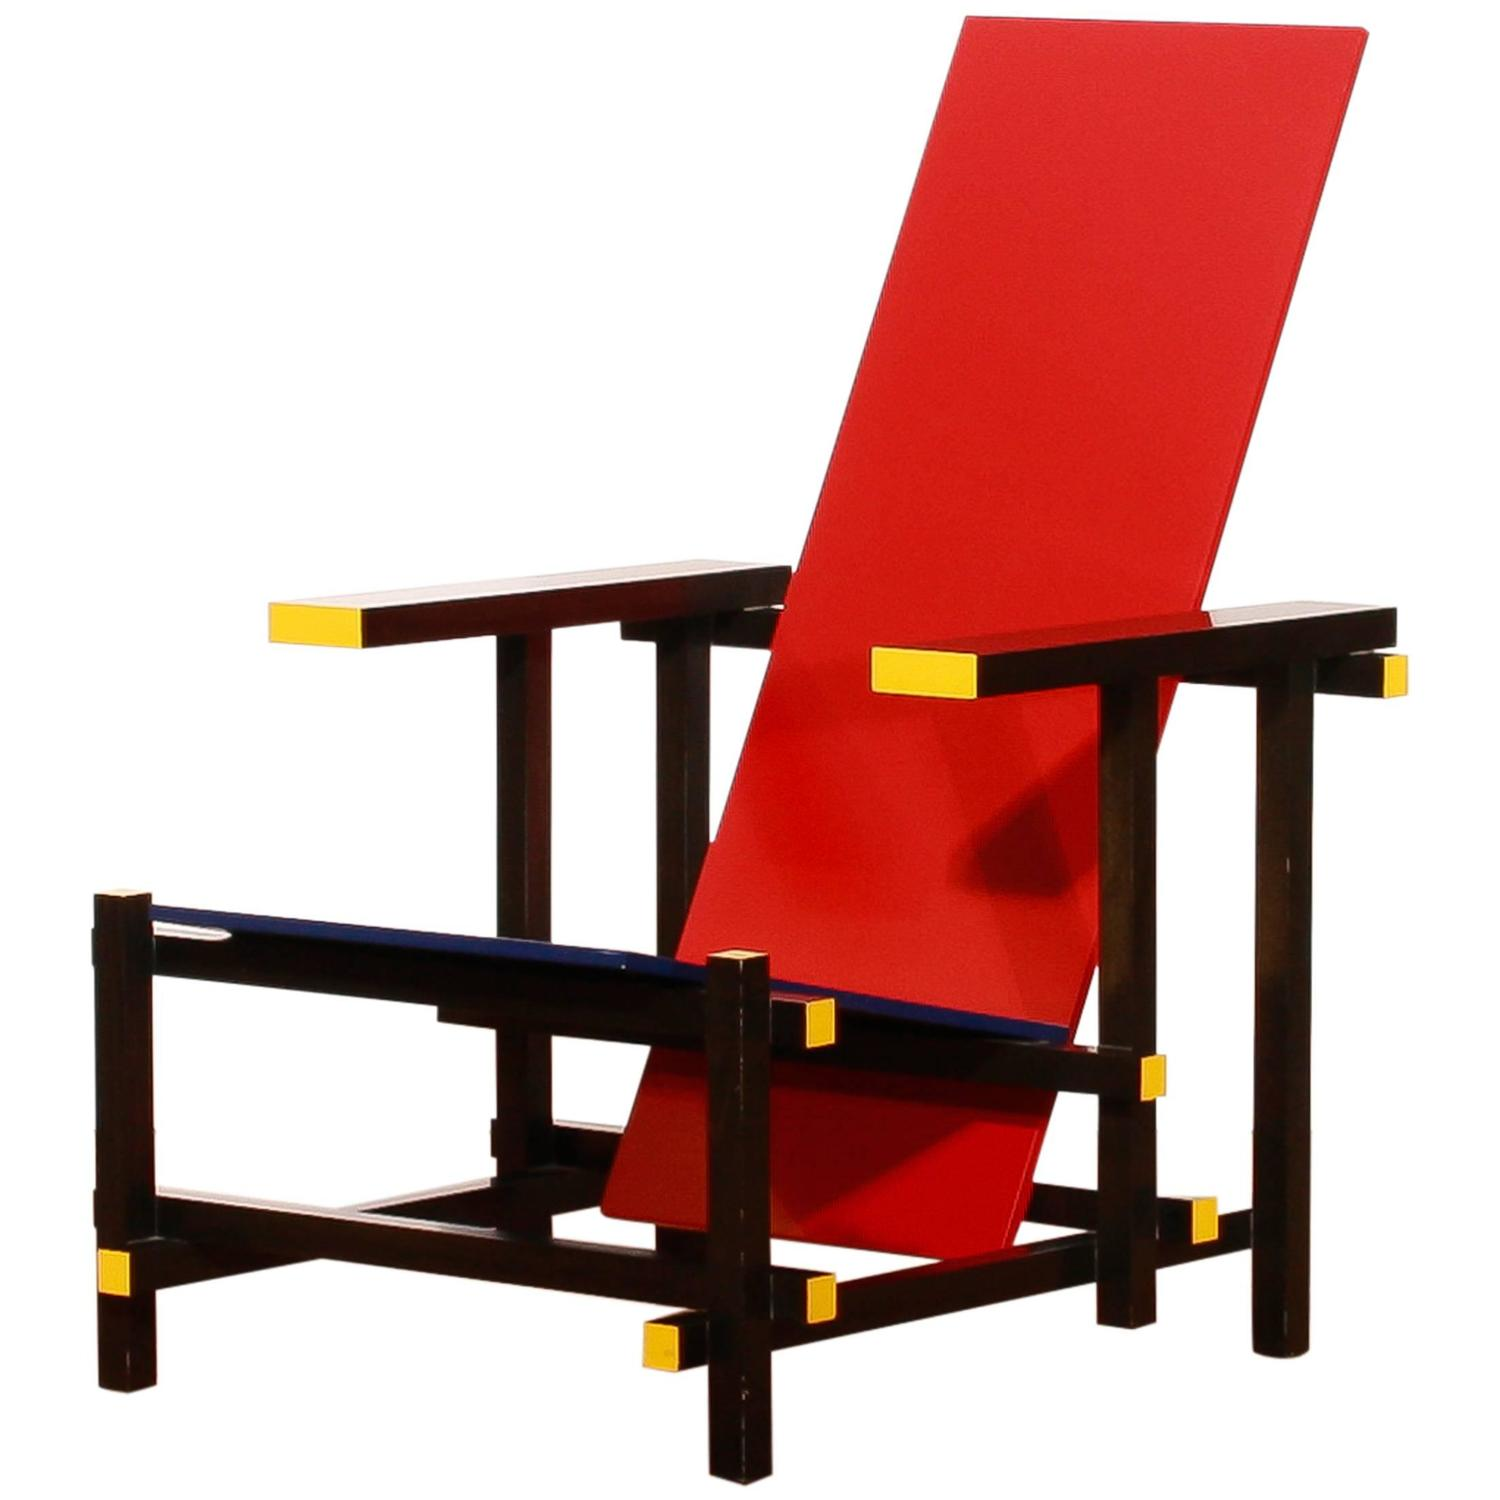 gerrit thomas rietveld chair black office no wheels t for cassina red and blue 1973